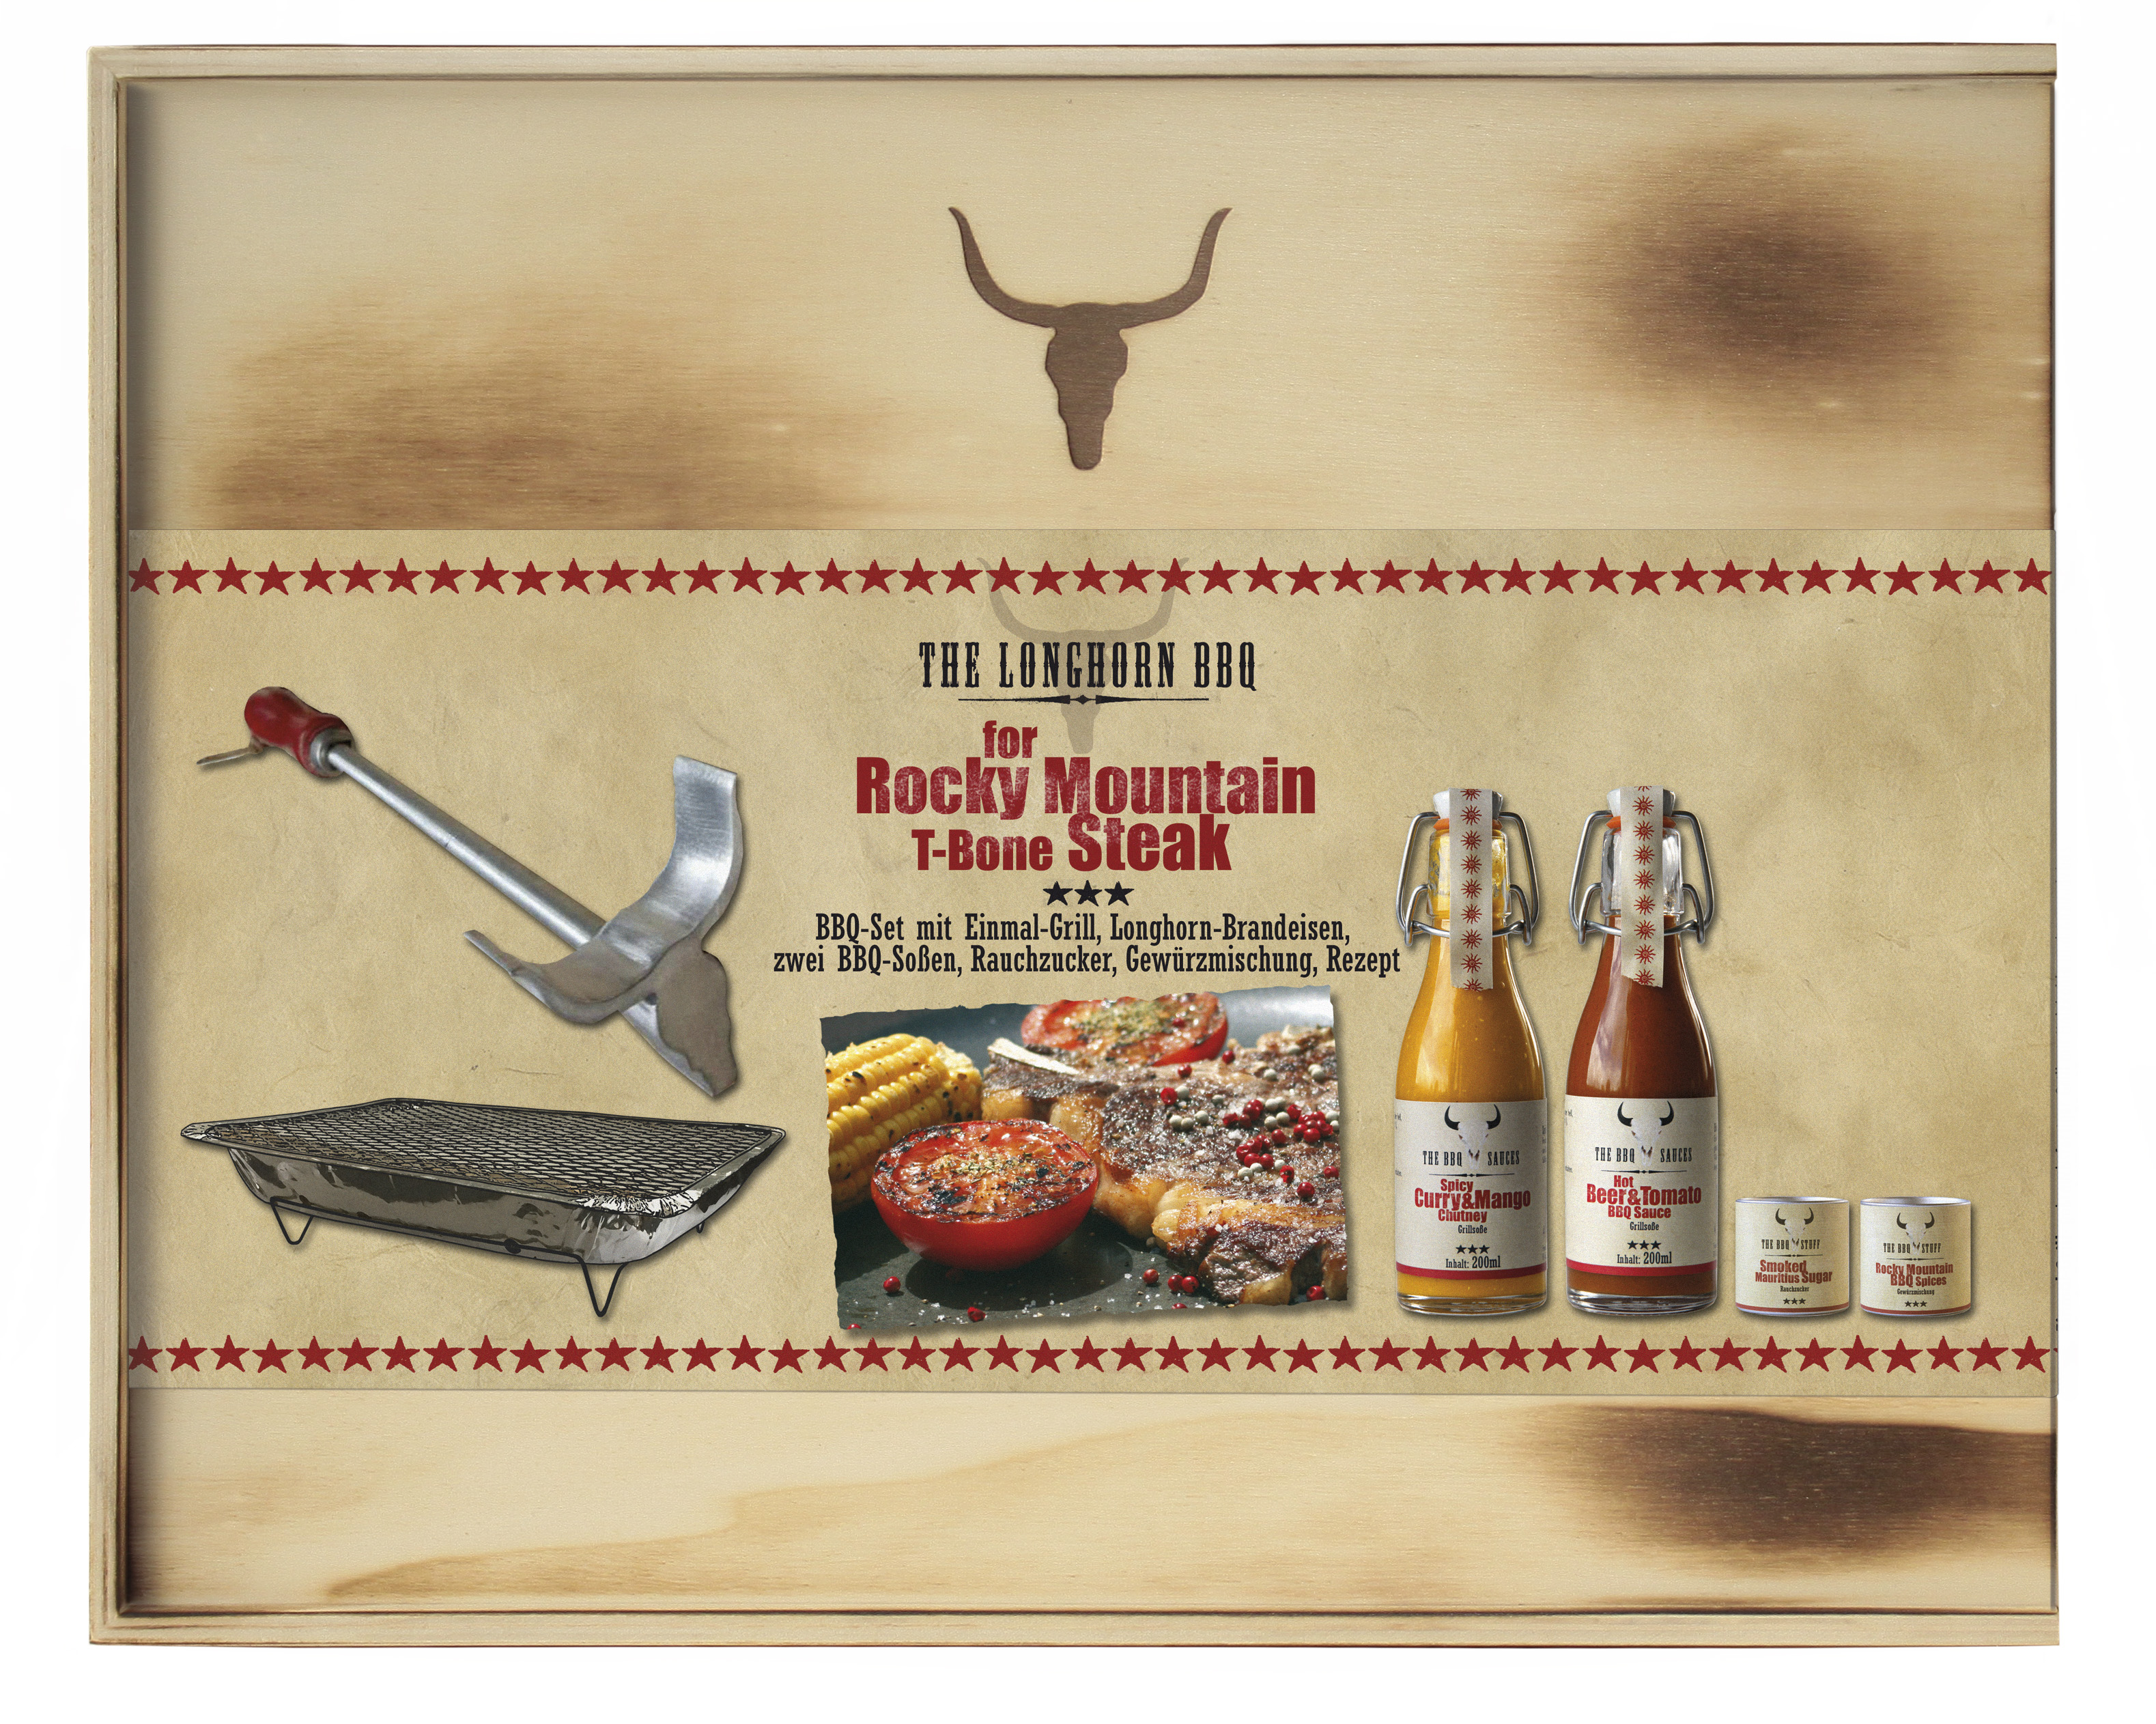 The Longhorn BBQ Kit - Rocky Mountain T-Bone Steak